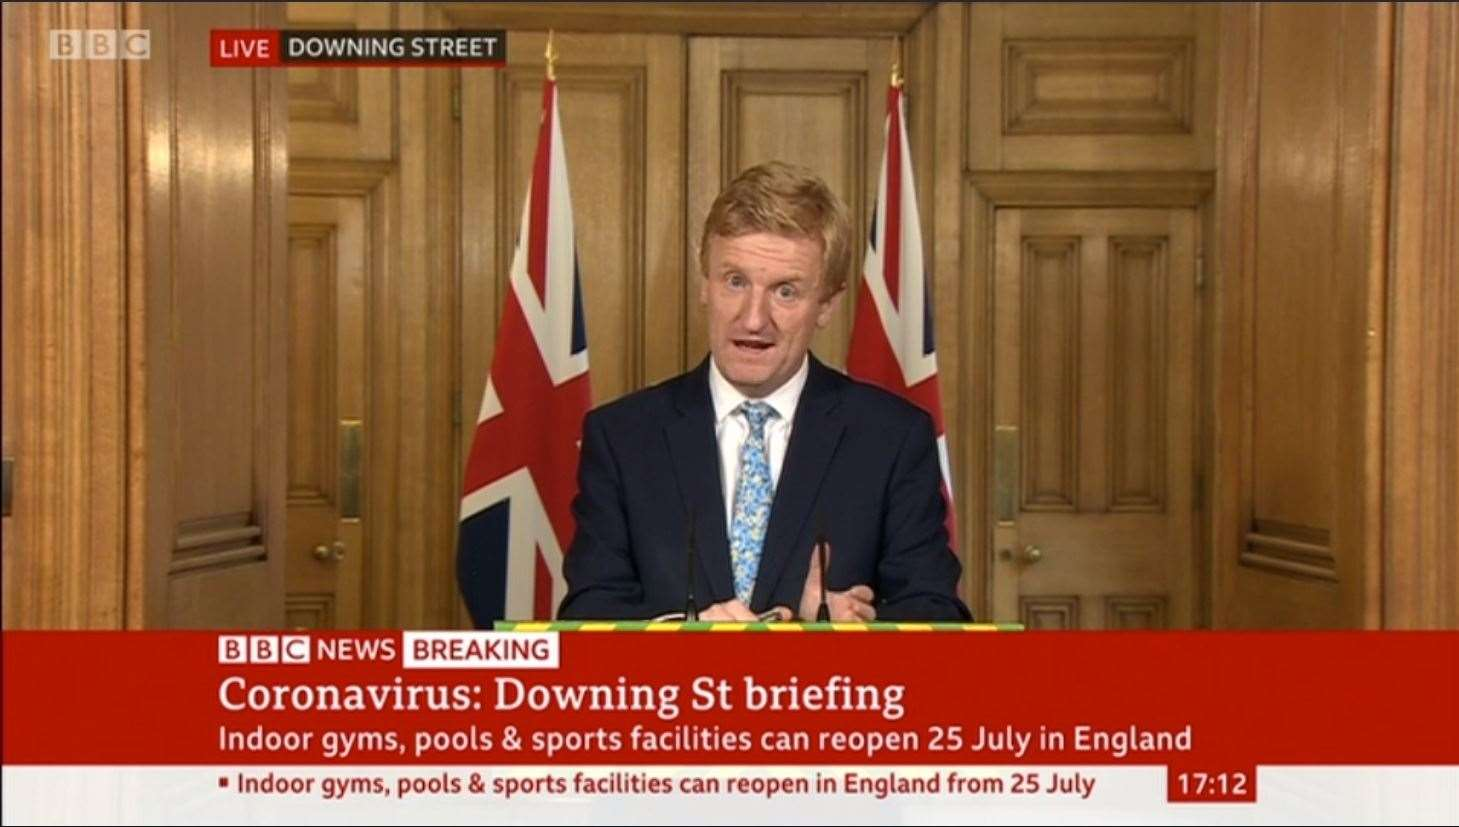 Oliver Dowden, the secretary of state for culture, media and sport, taking a government press conference